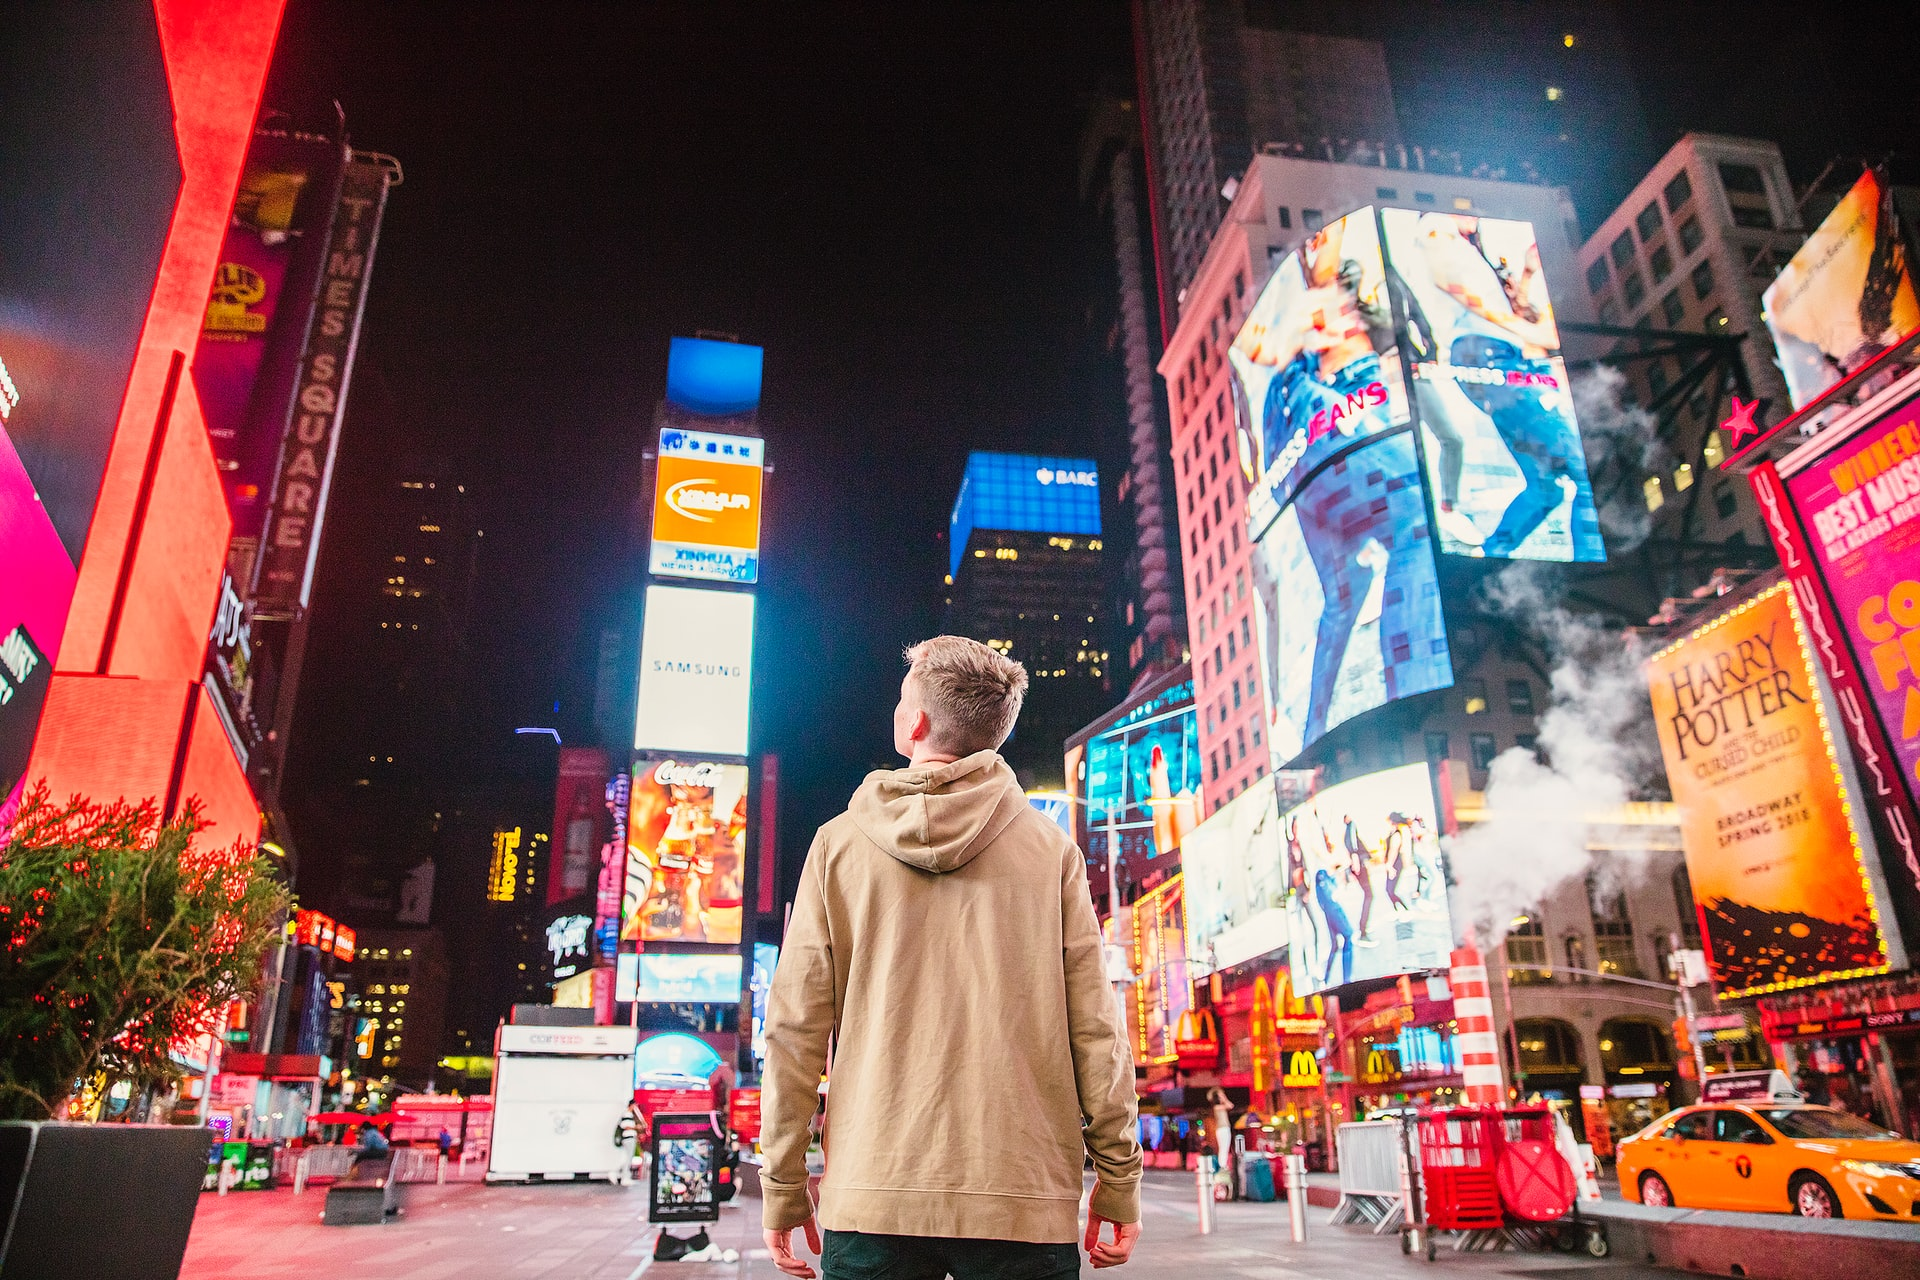 4 reasons your business should consider digital signage